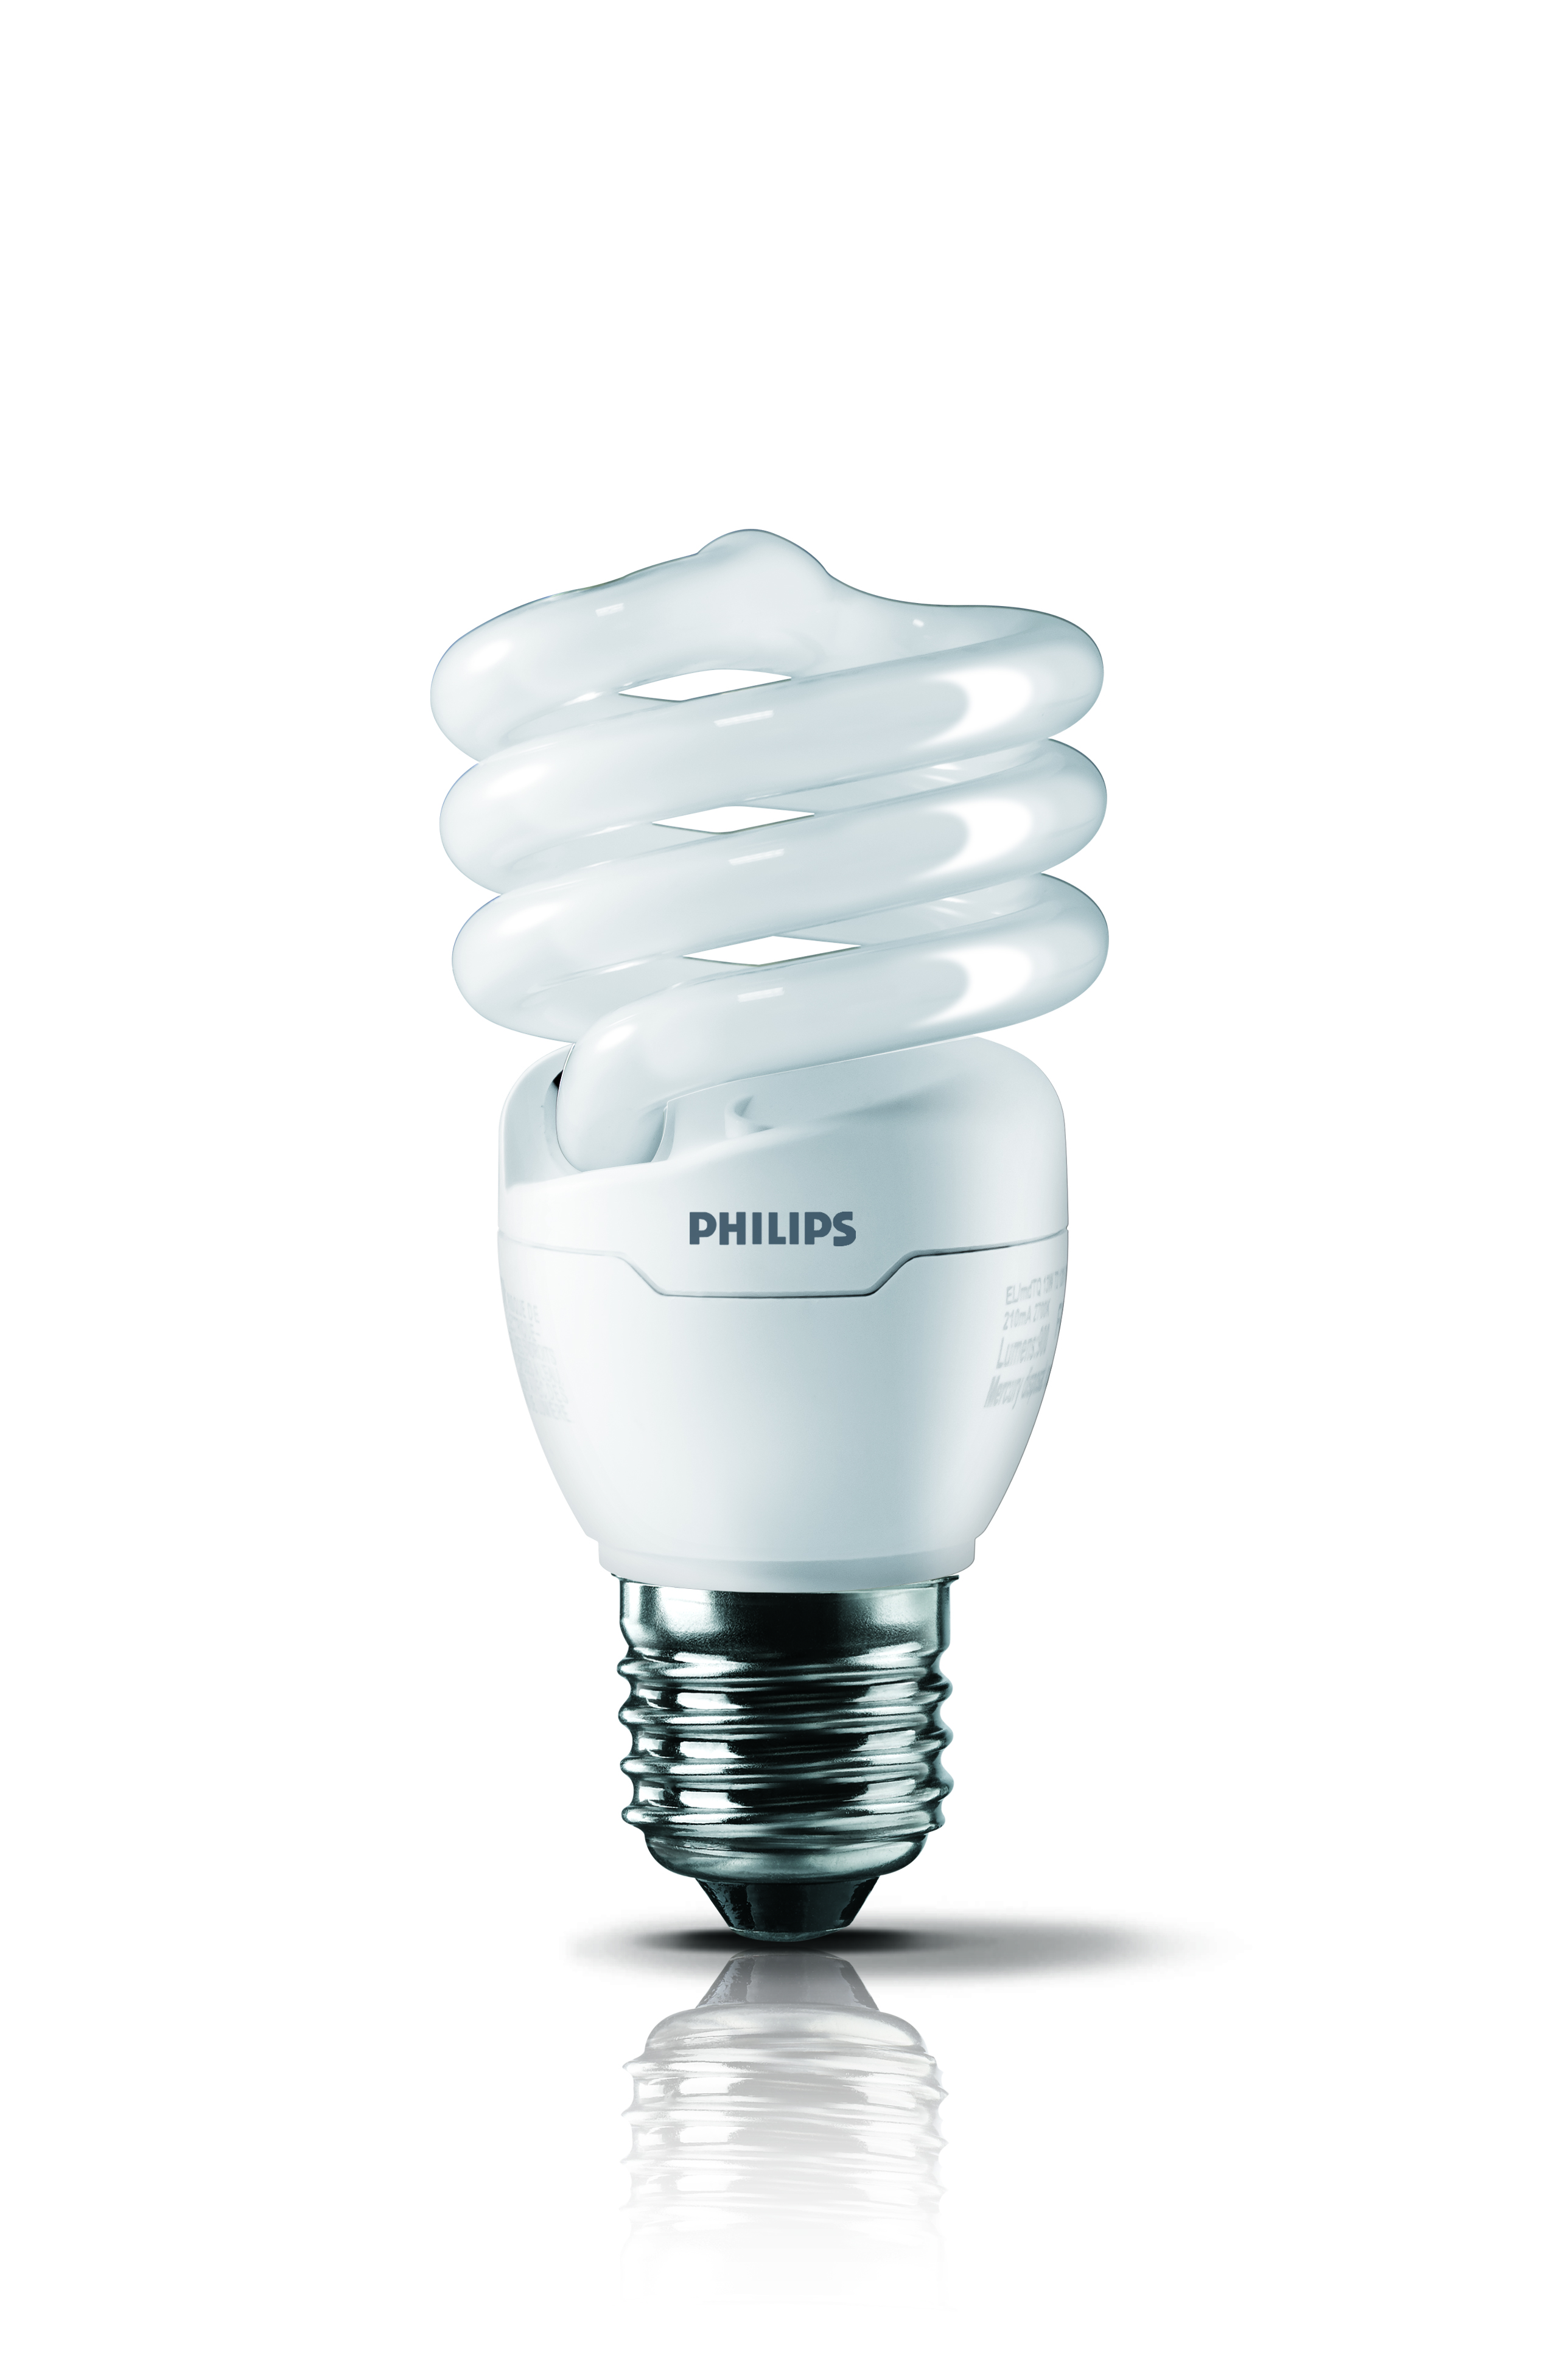 package cfl project bulbs about gelighting together bulb with ge cbias energy learn science light this and save lighting